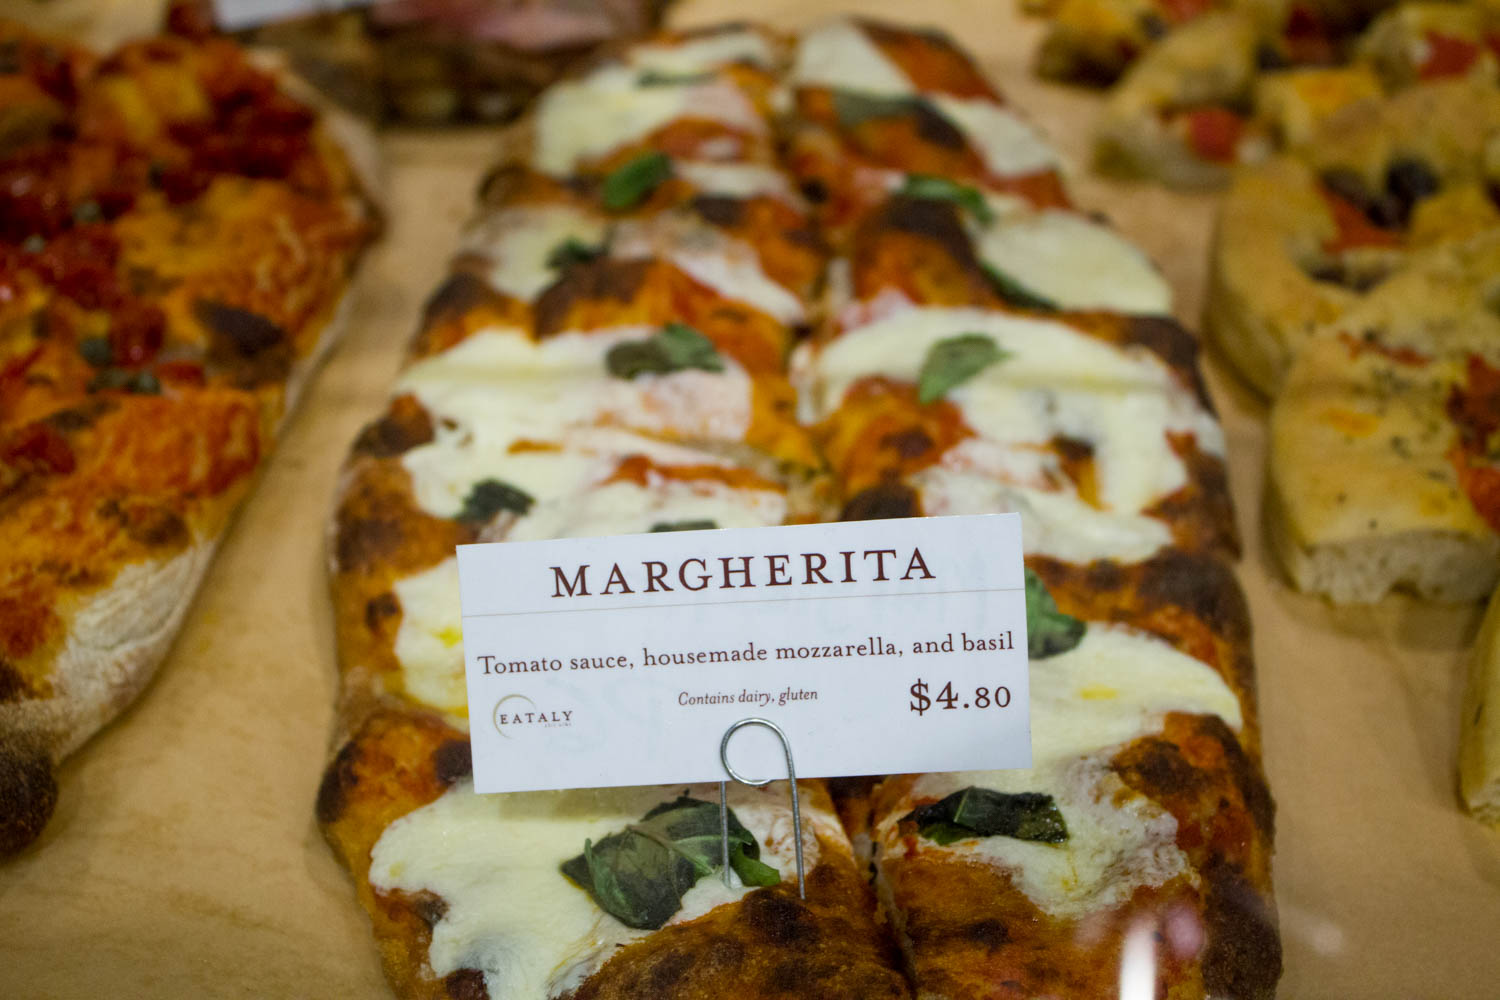 Pizza on display at Eataly.